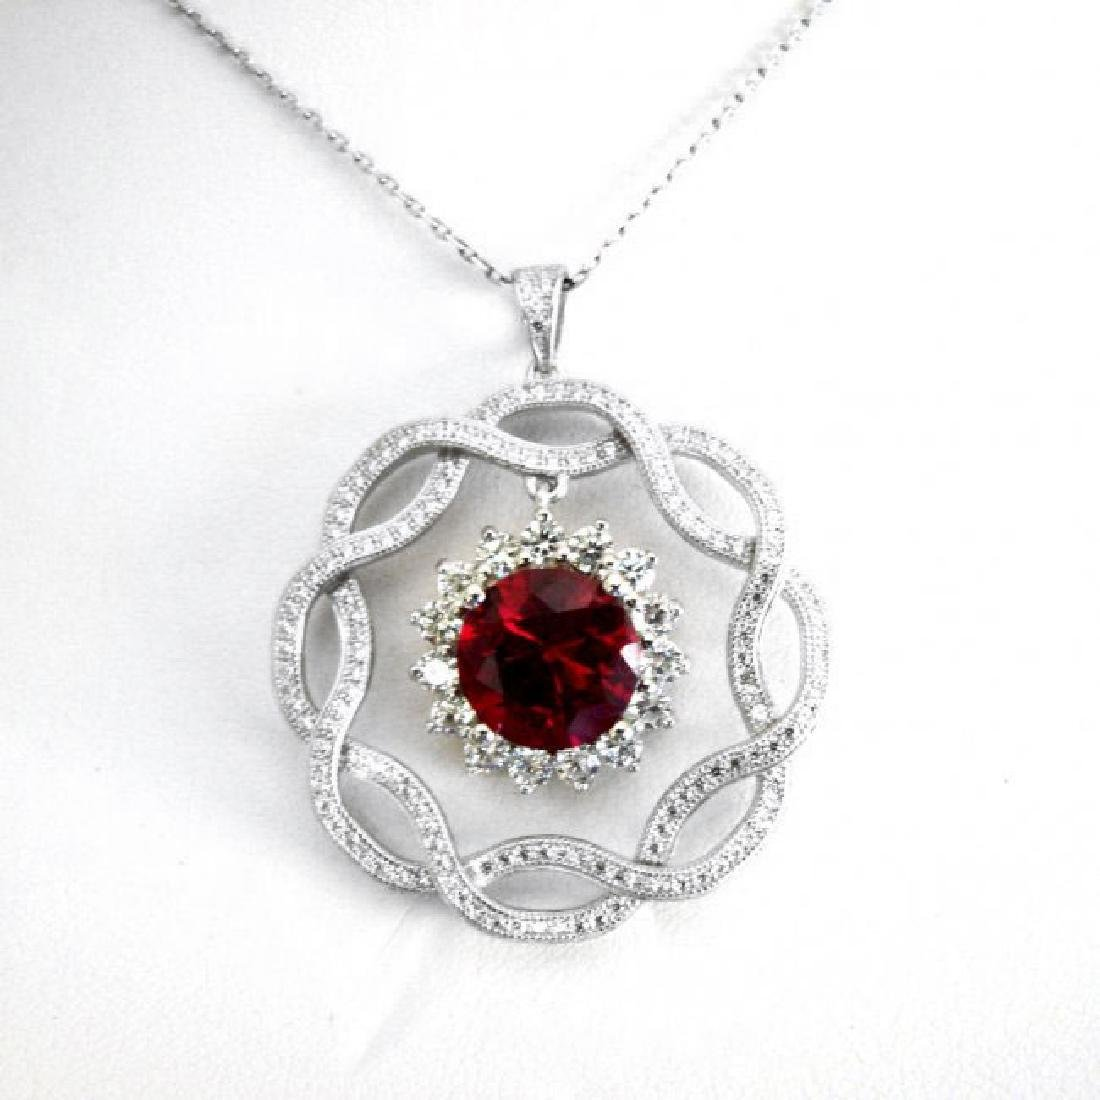 Creation Daimond Ruby Pendant 7.93Ct 18k W/g Overlay